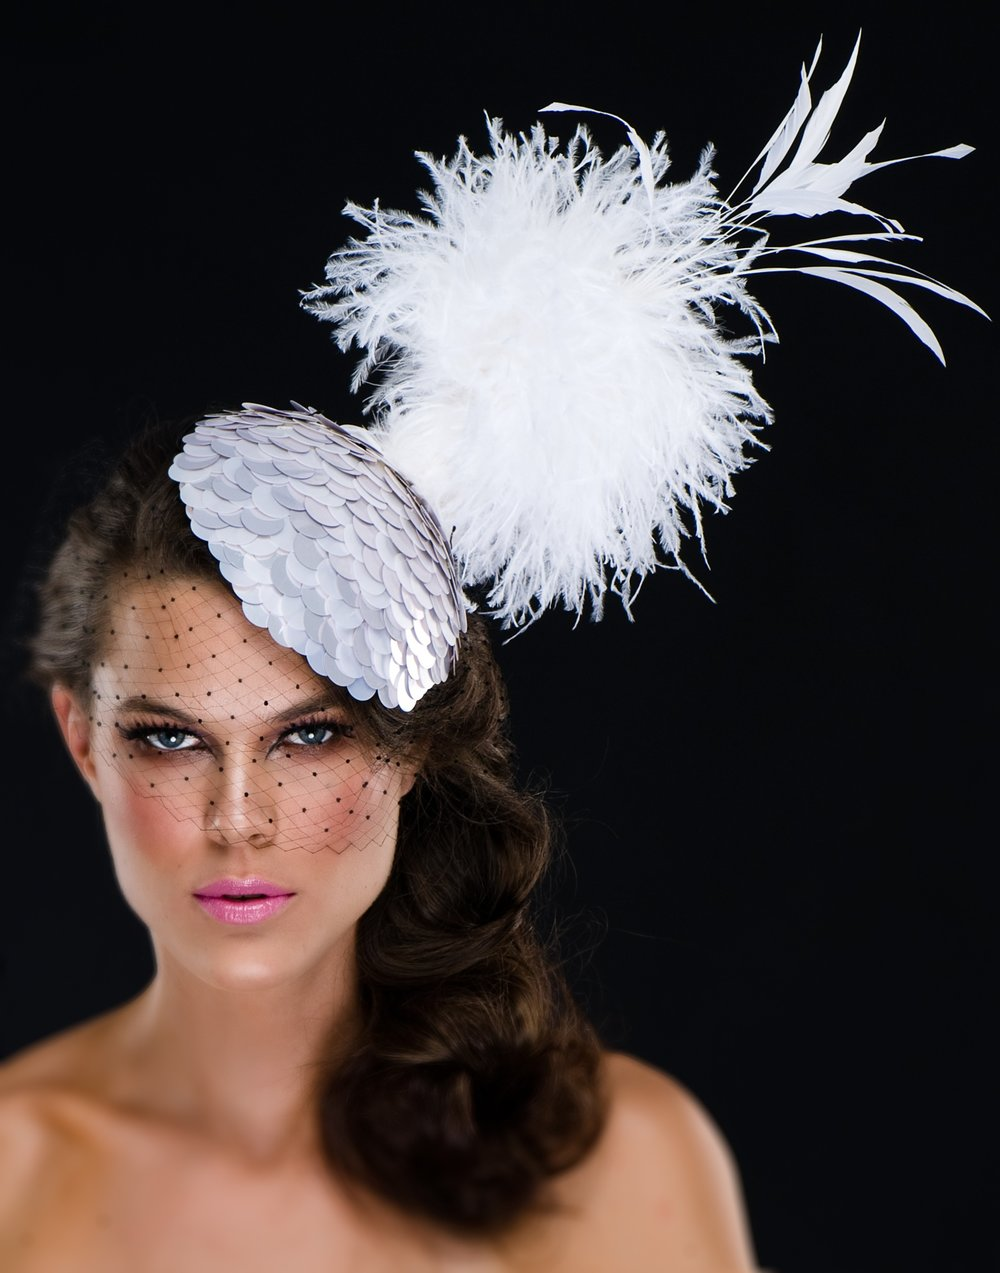 Hat designer: Arturo Rios  Photographer: Mark Sacro